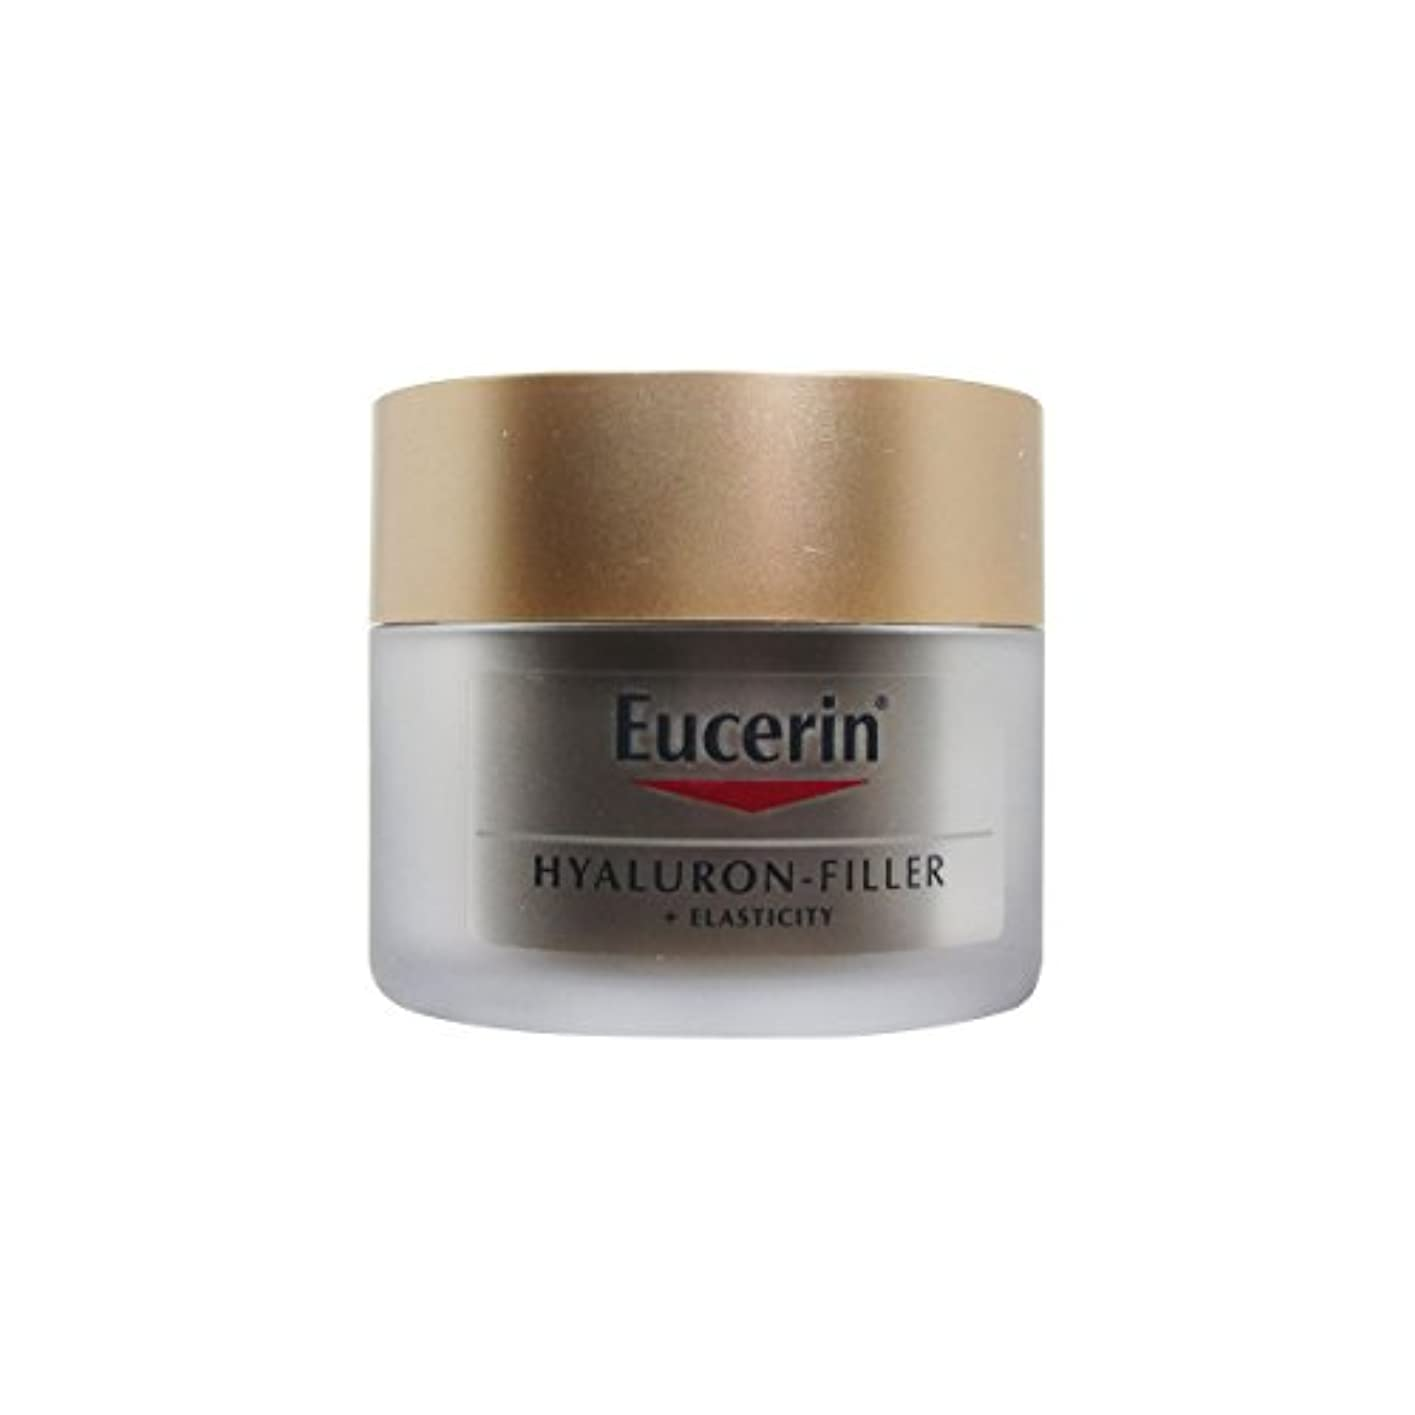 繊維水曜日忠実Eucerin Hyaluron Filler + Elasticity Night Cream 50ml [並行輸入品]